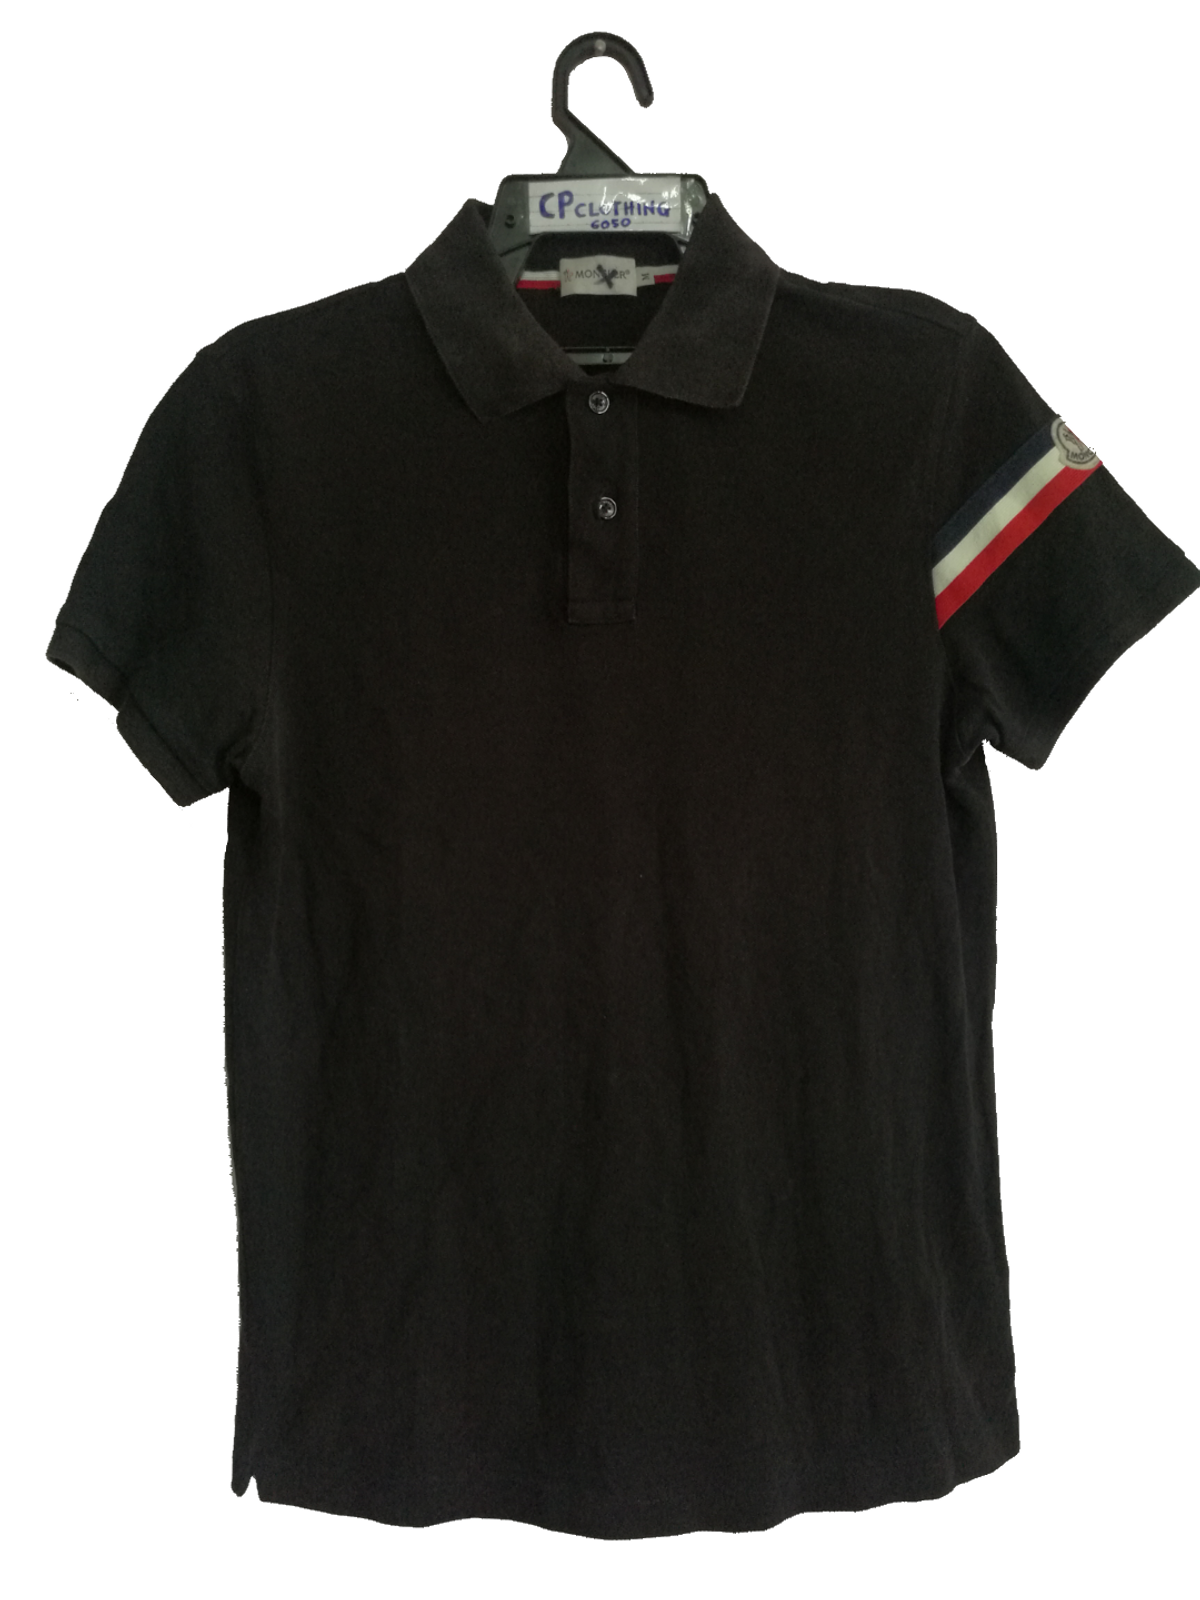 Moncler Moncler Polo Shirt With France Flag Stripe Size M Supreme